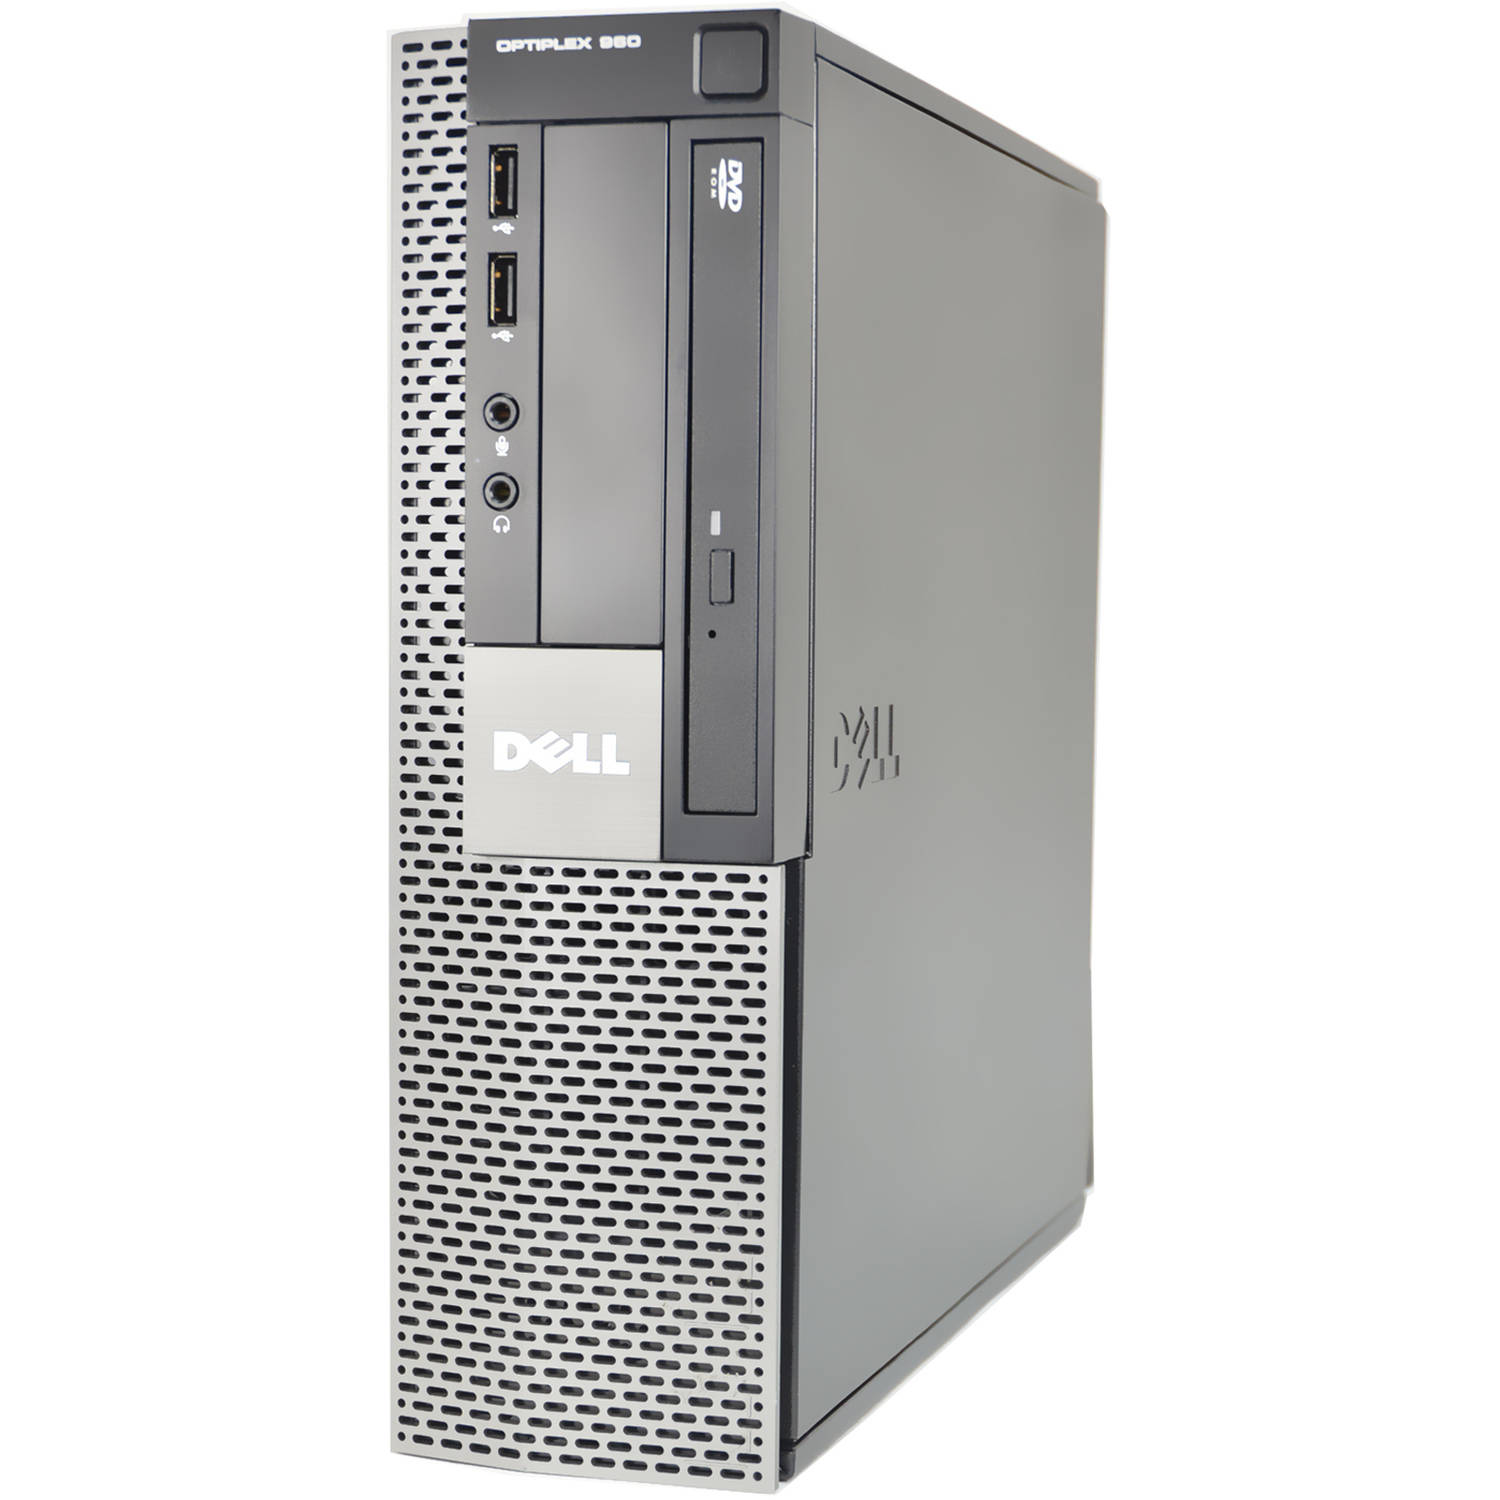 Refurbished Dell Optiplex 960-SFF WA1-0421 Desktop PC with Intel Core 2 Duo Processor, 4GB Memory, 1TB Hard Drive and Windows 10 Pro (Monitor Not Included)